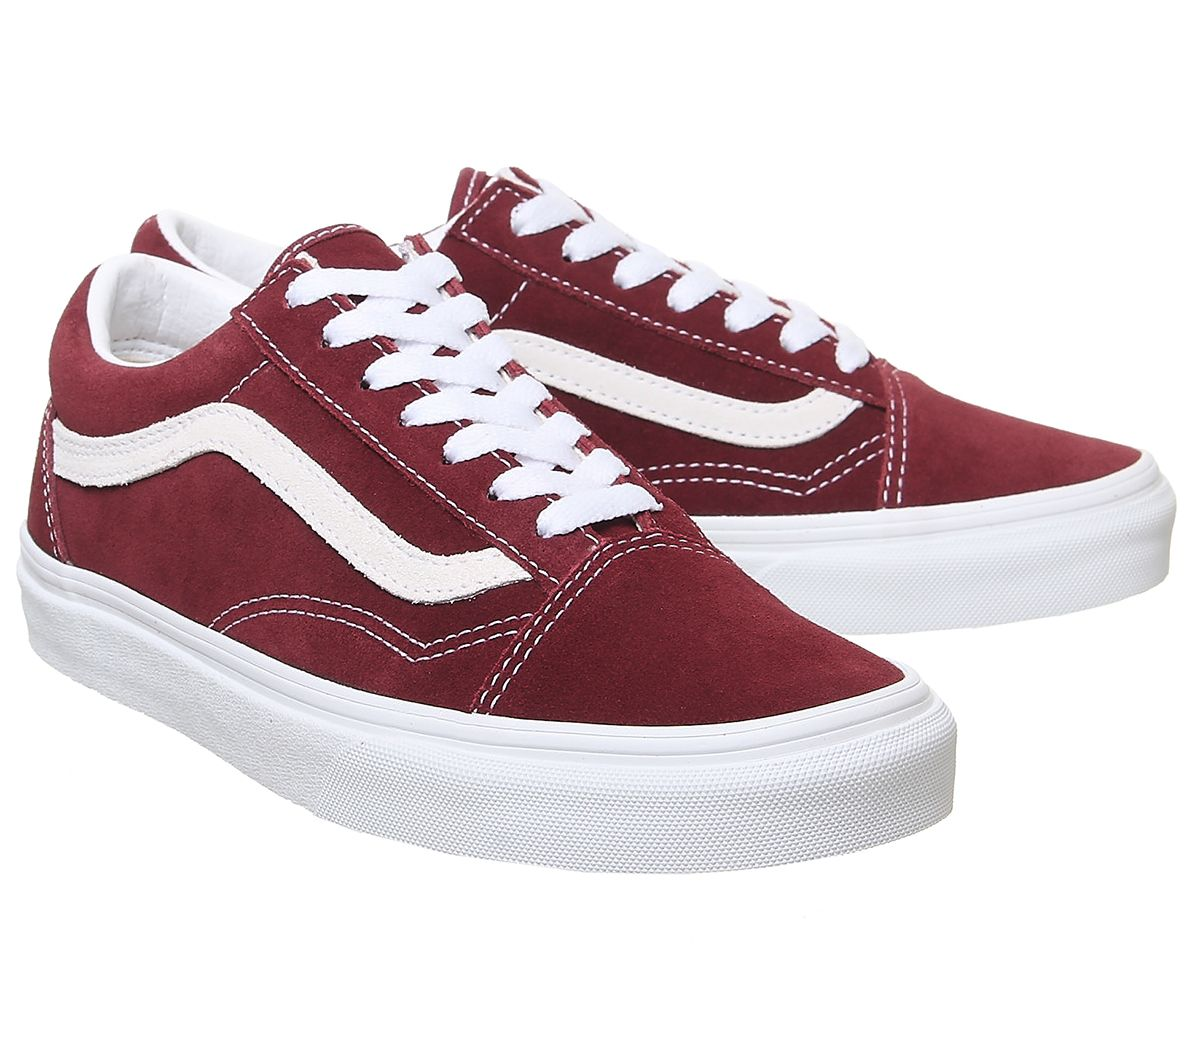 Vans-Old-Skool-Baskets-Port-Royale-Baskets-Chaussures miniature 6